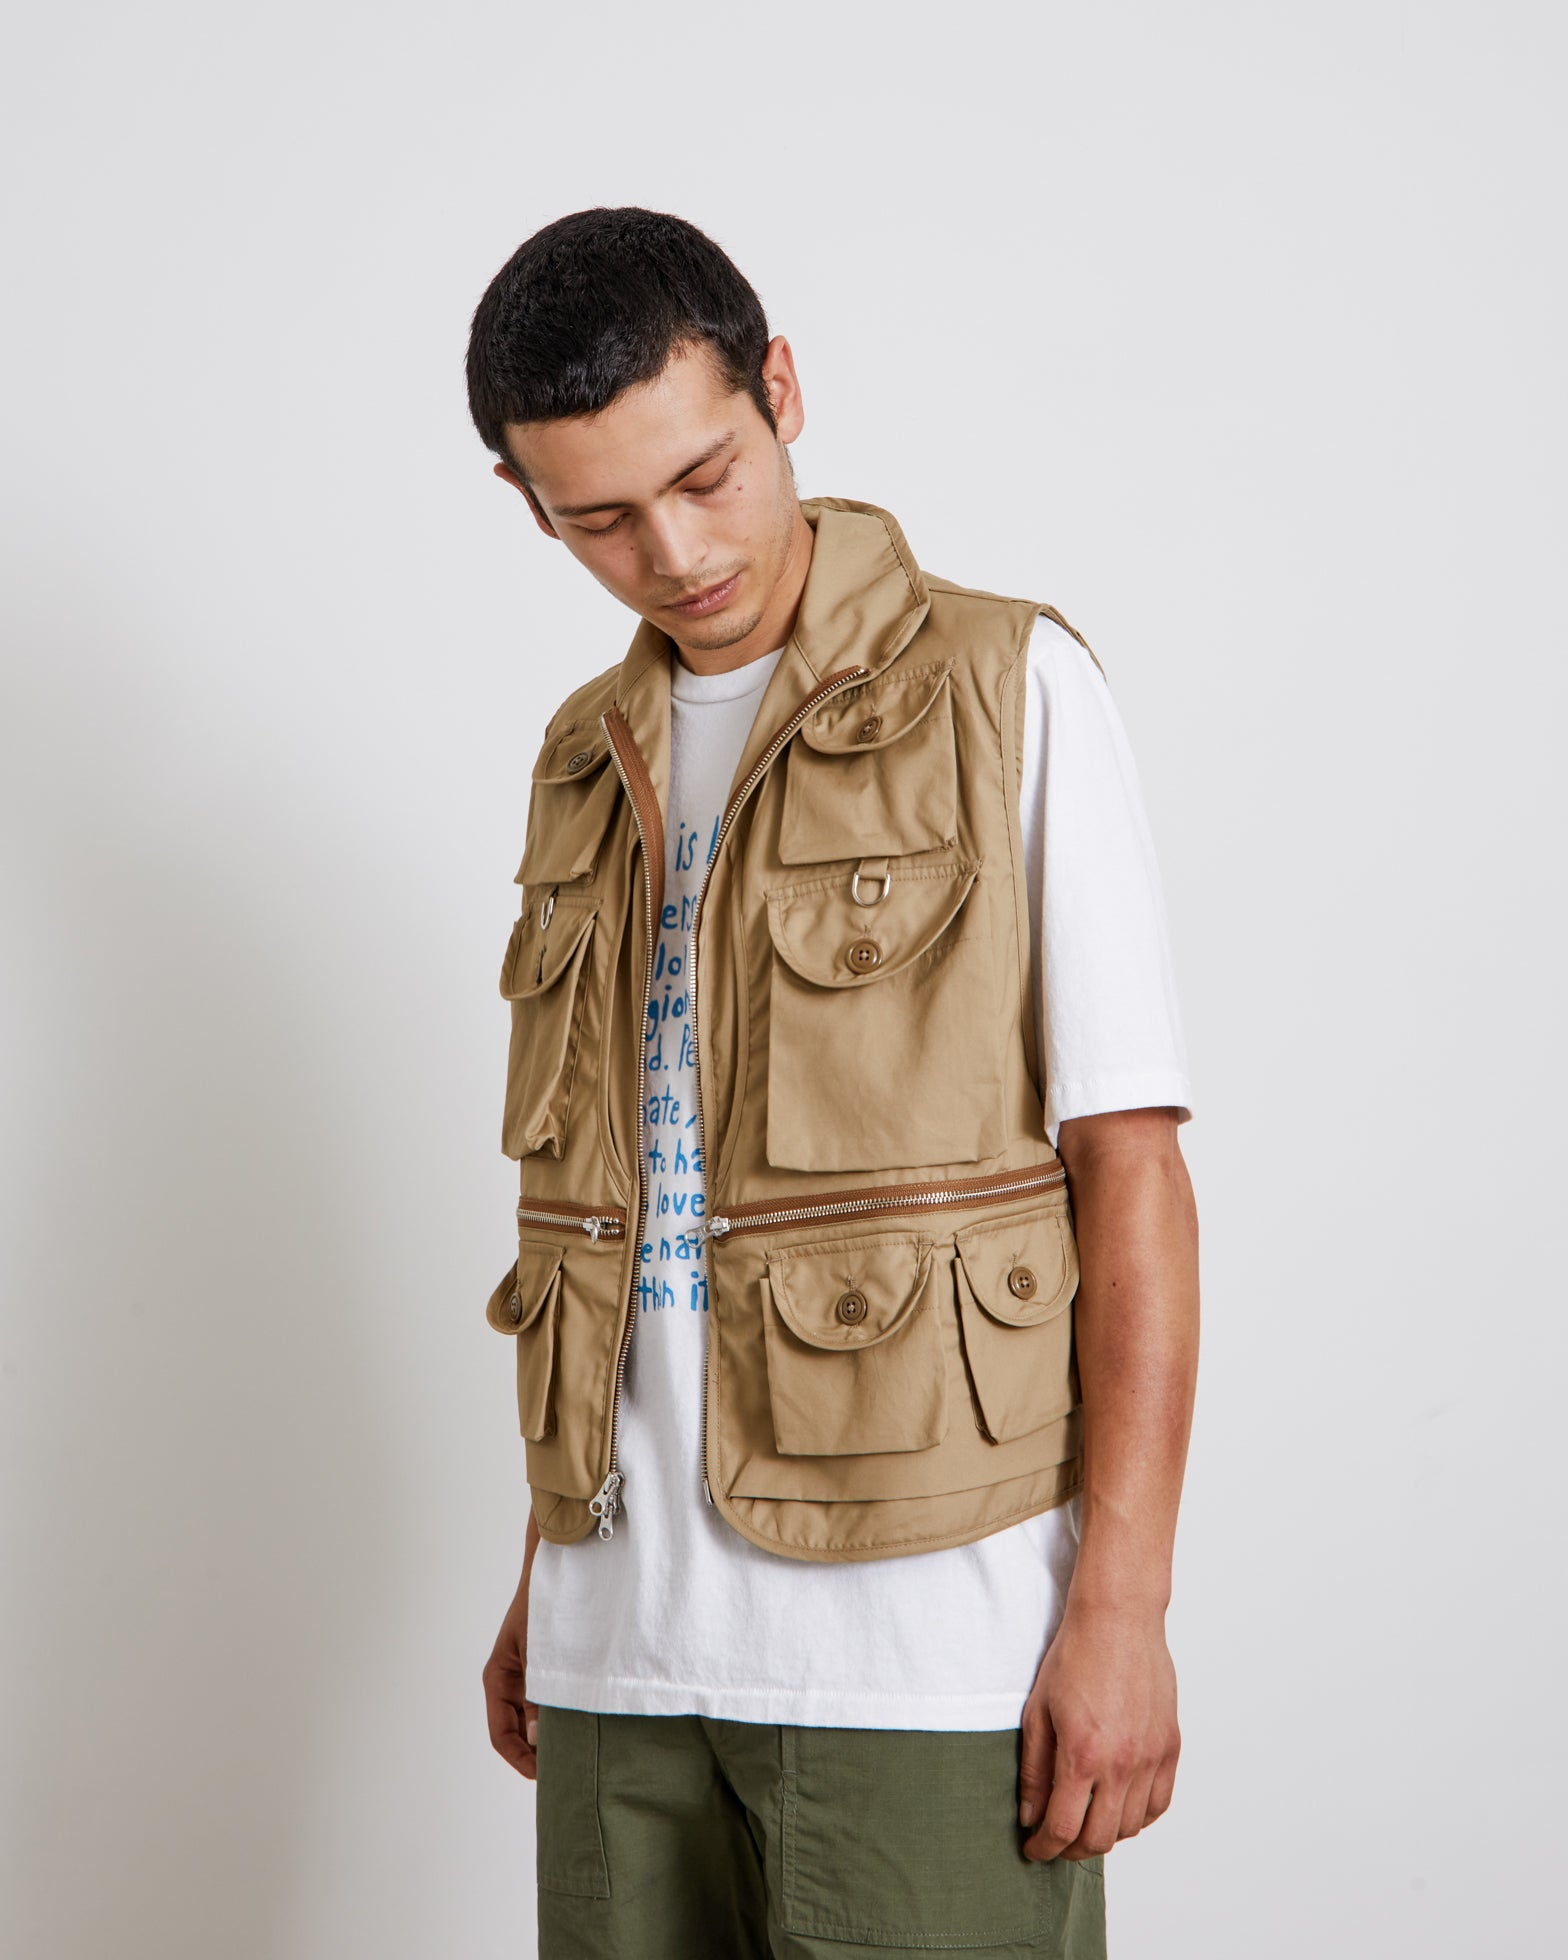 Mossy Fishing Vest in Khaki